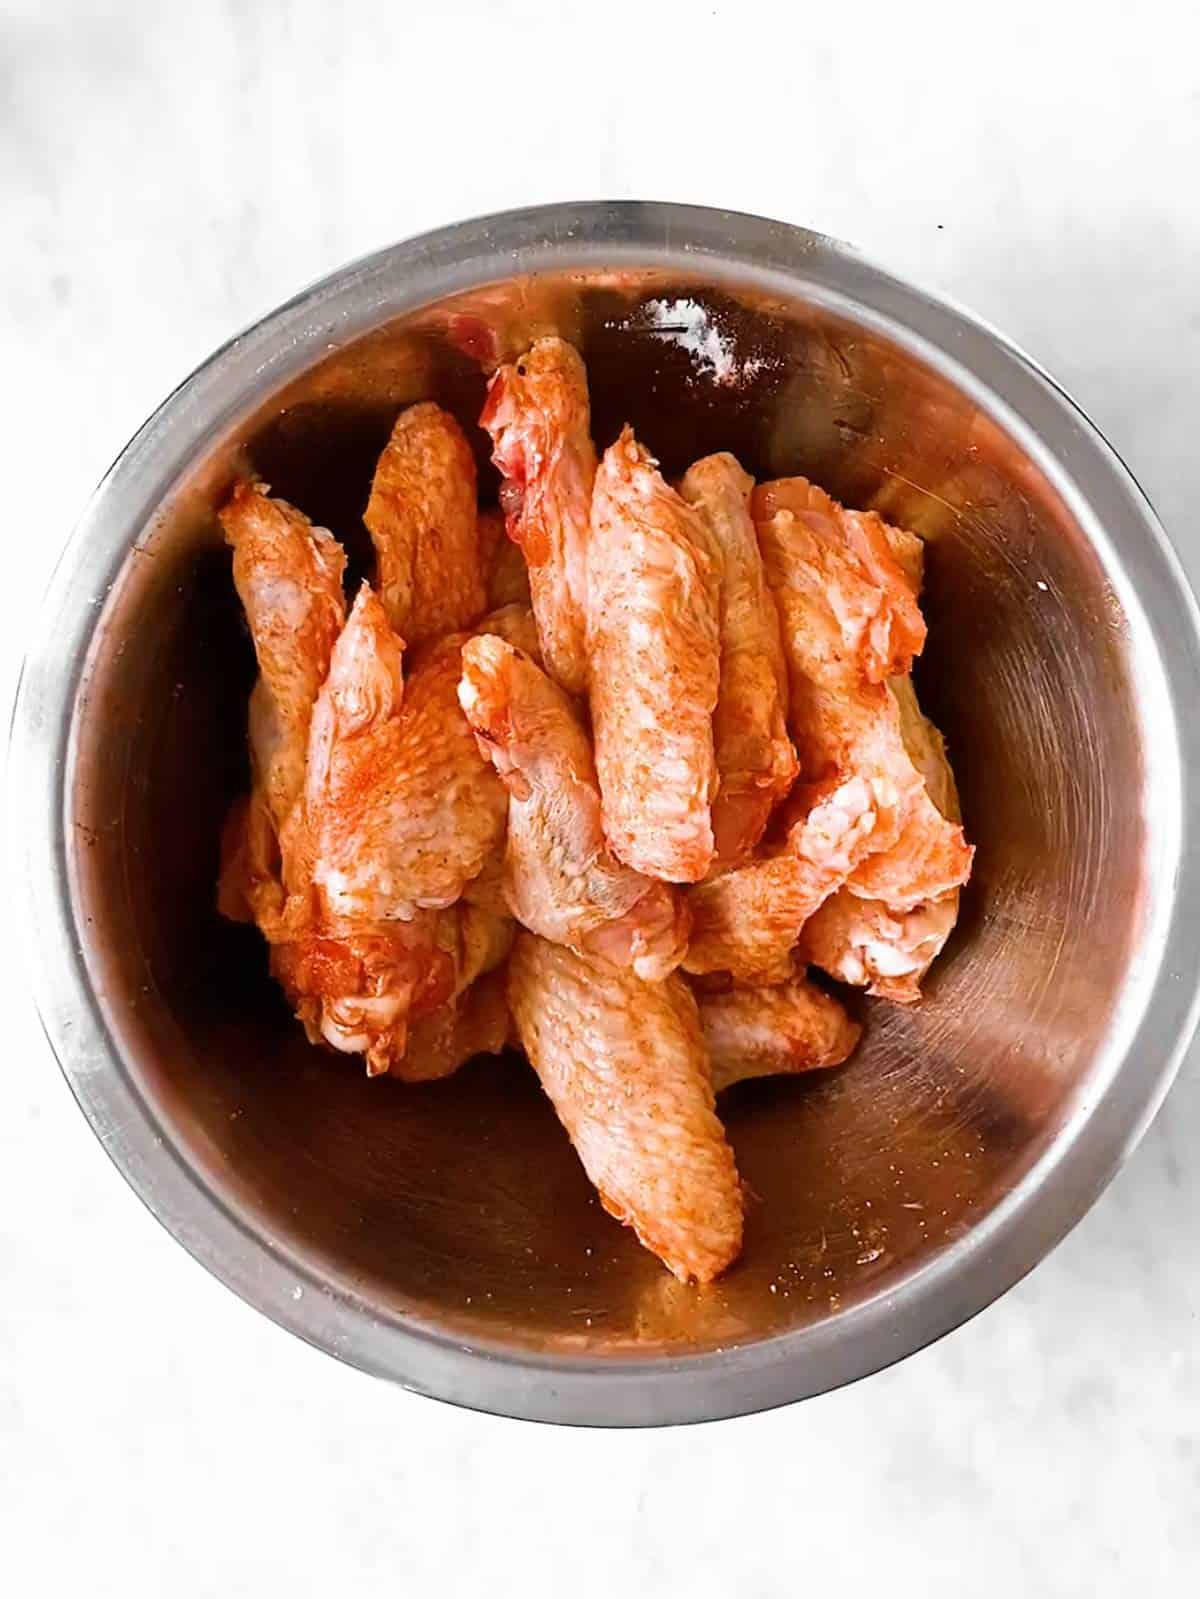 bowl with seasoned raw chicken wings